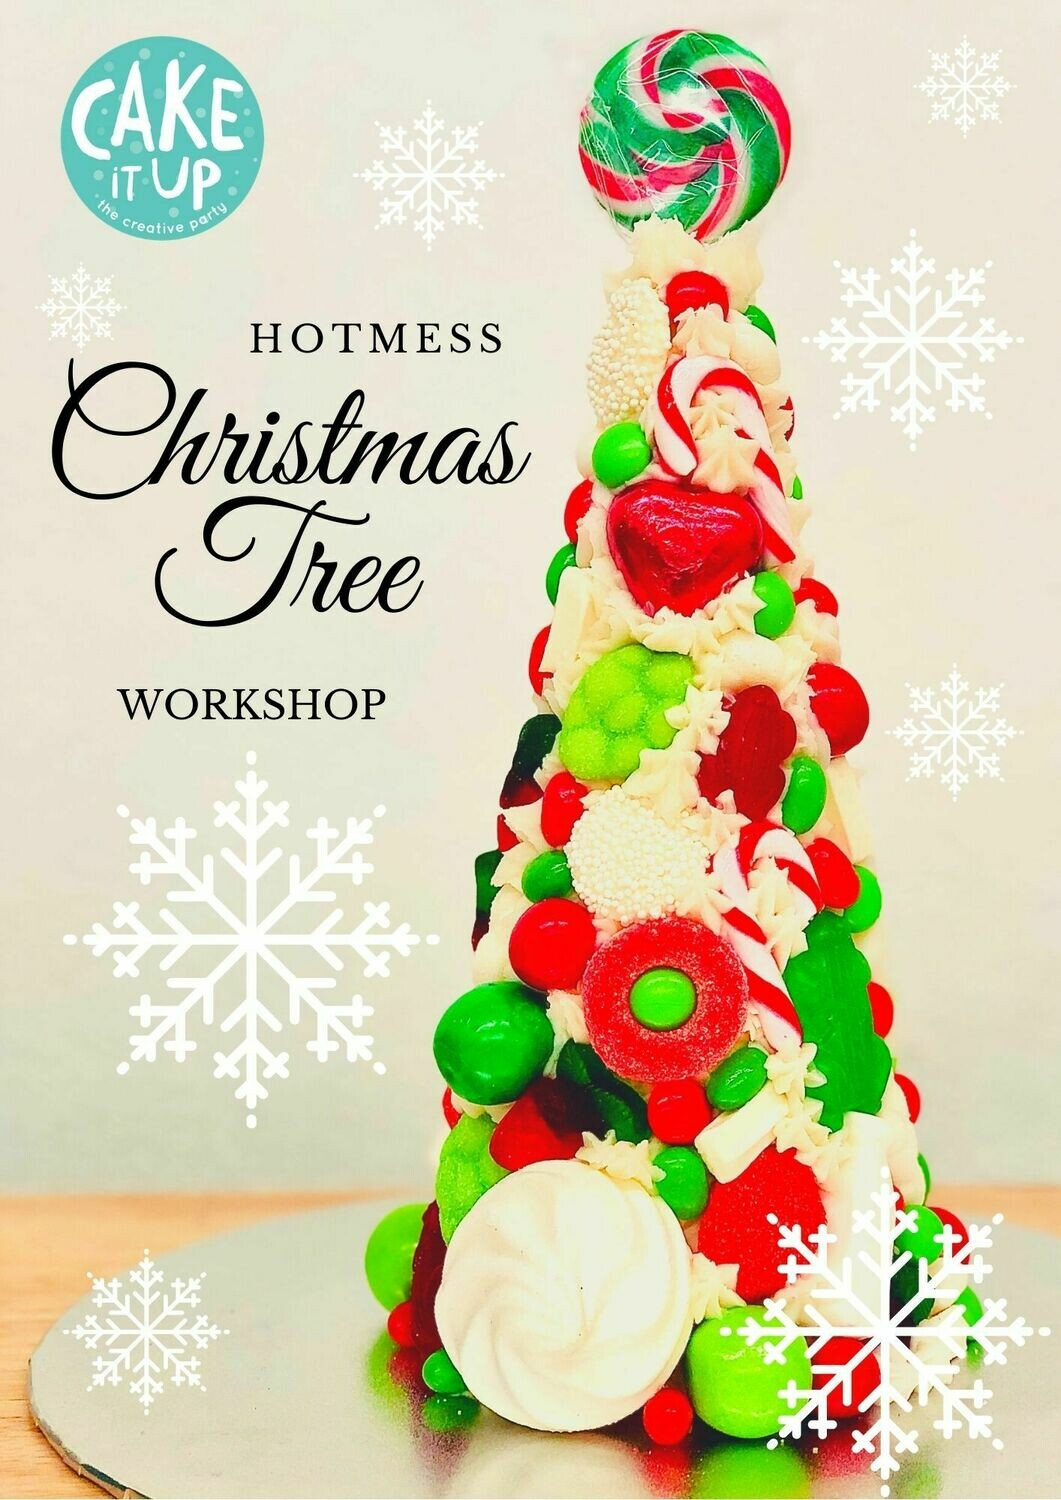 6+ The Hot Mess Christmas Tree - Thursday 17 December 2020 - School Holiday Workshop for Kids - 9:30am to 11am